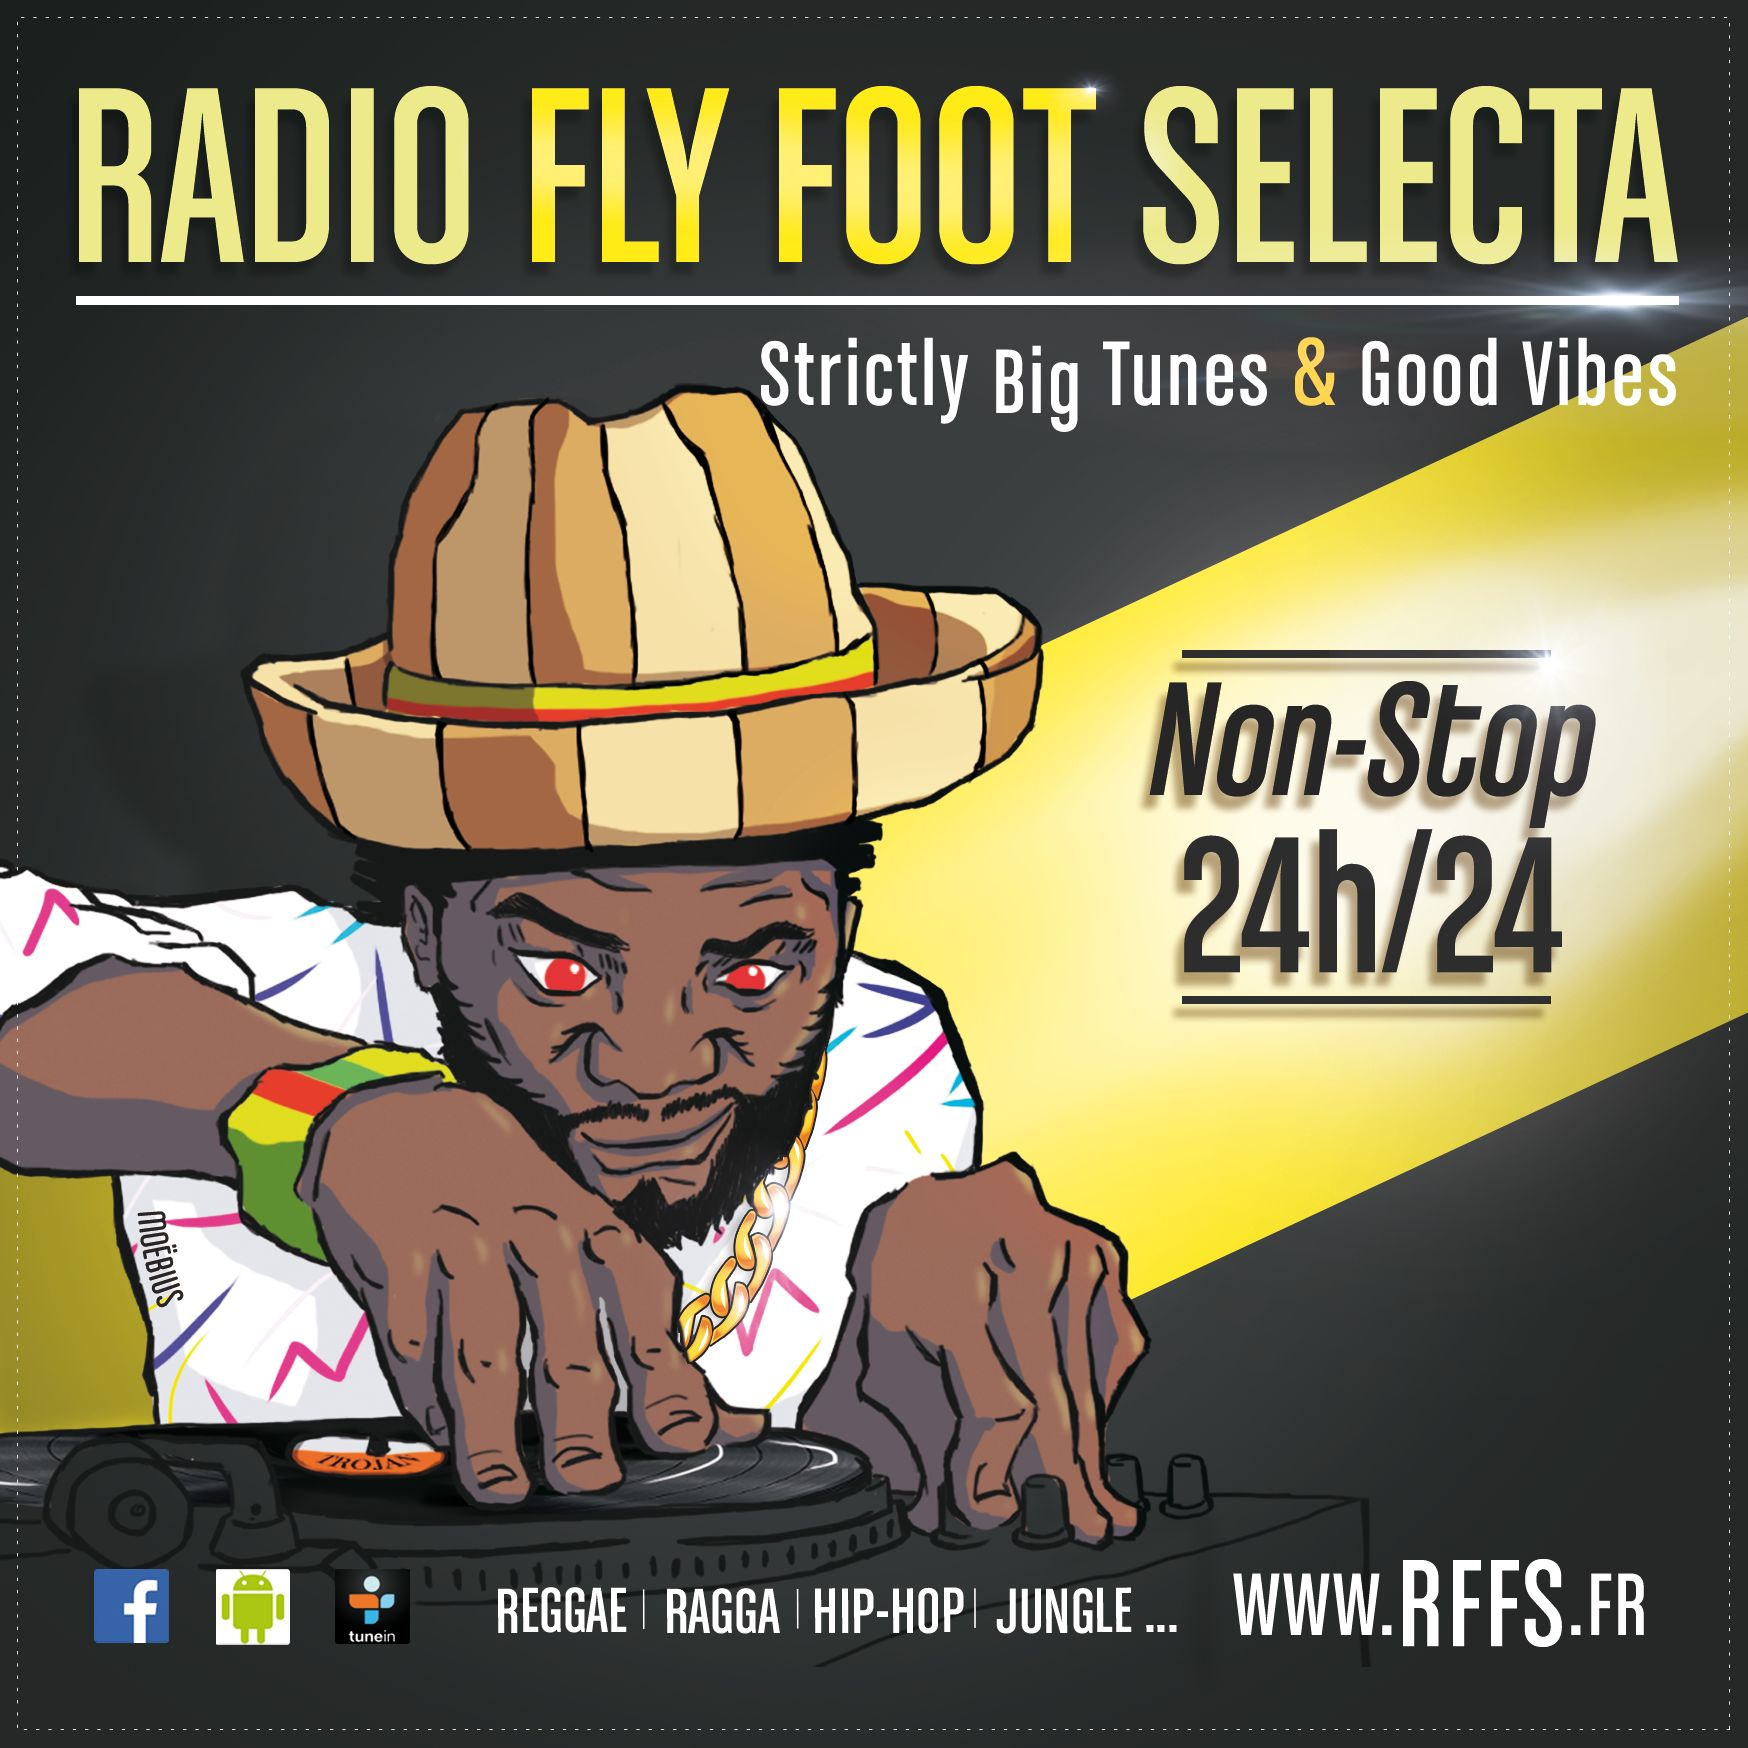 radio fly foot selecta